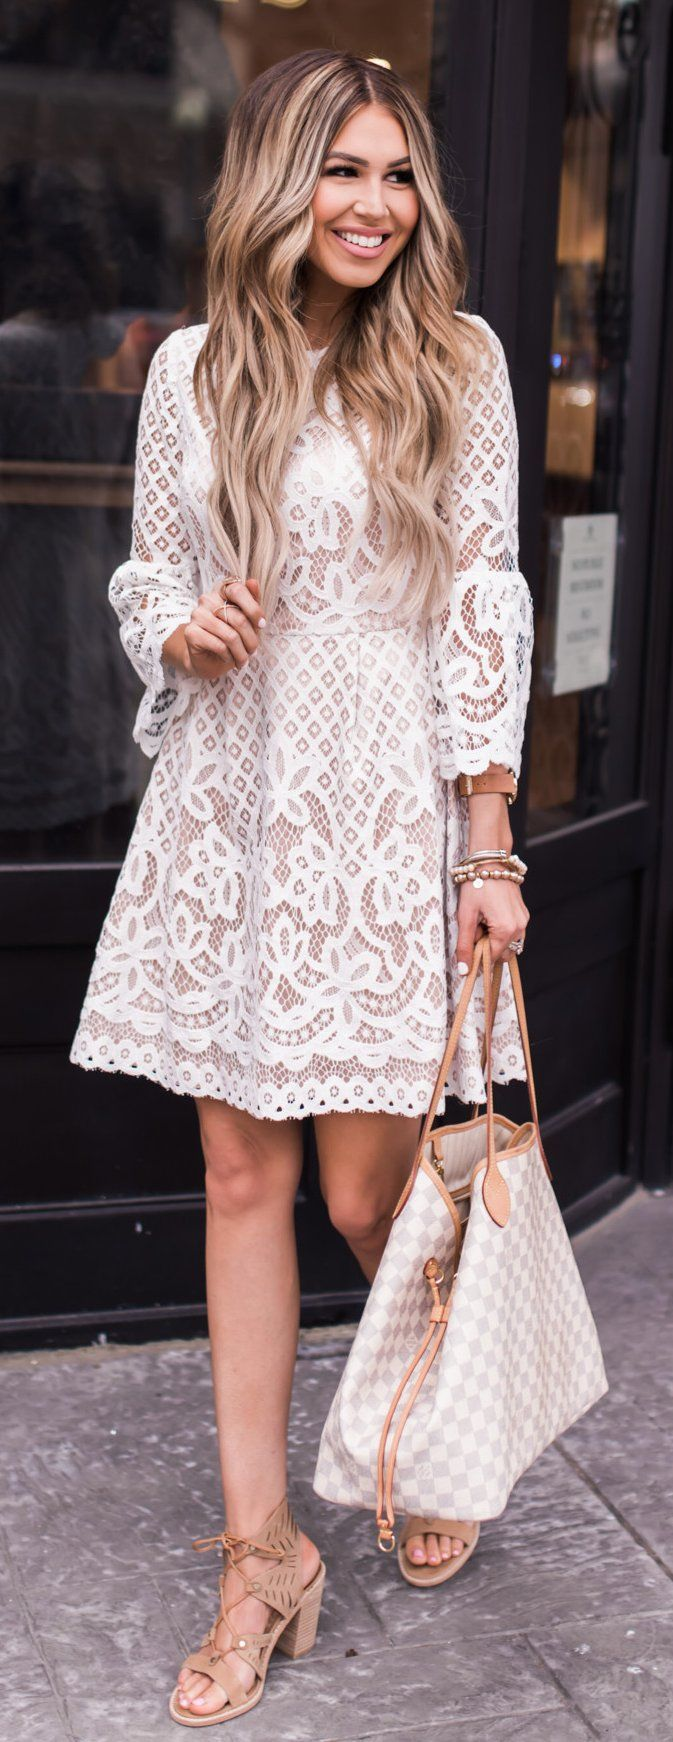 #spring #outfits White Lace Dress & Checked Tote Bag